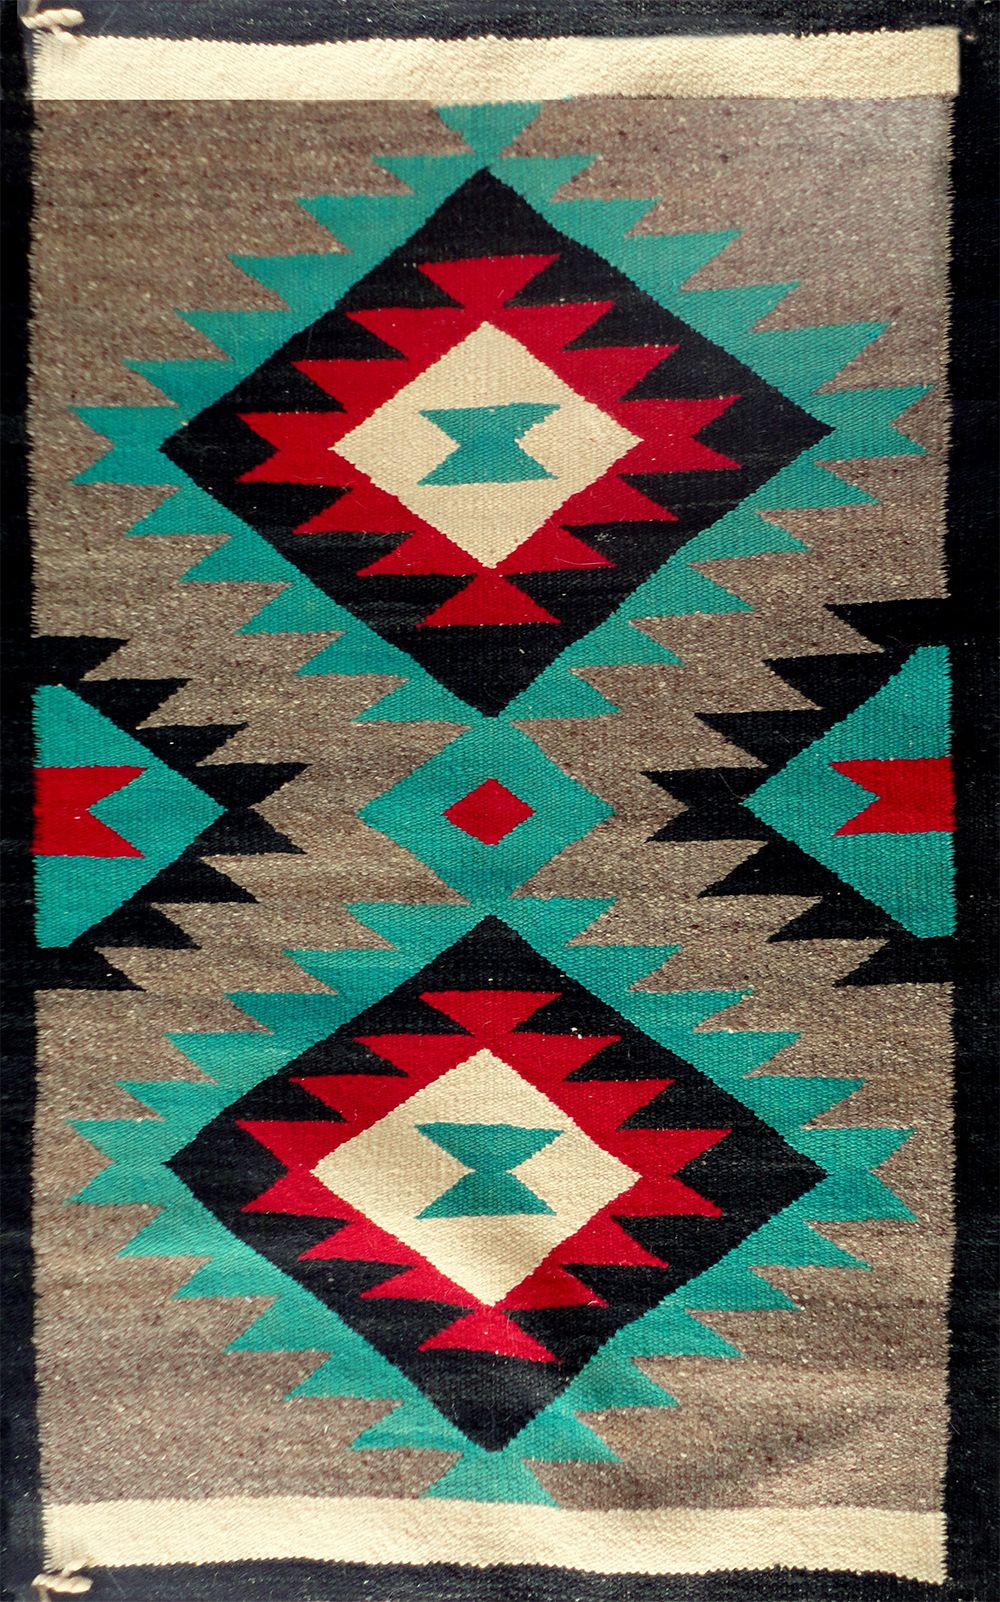 navajo rug home design decorating pinterest navajo native americans and patterns. Black Bedroom Furniture Sets. Home Design Ideas